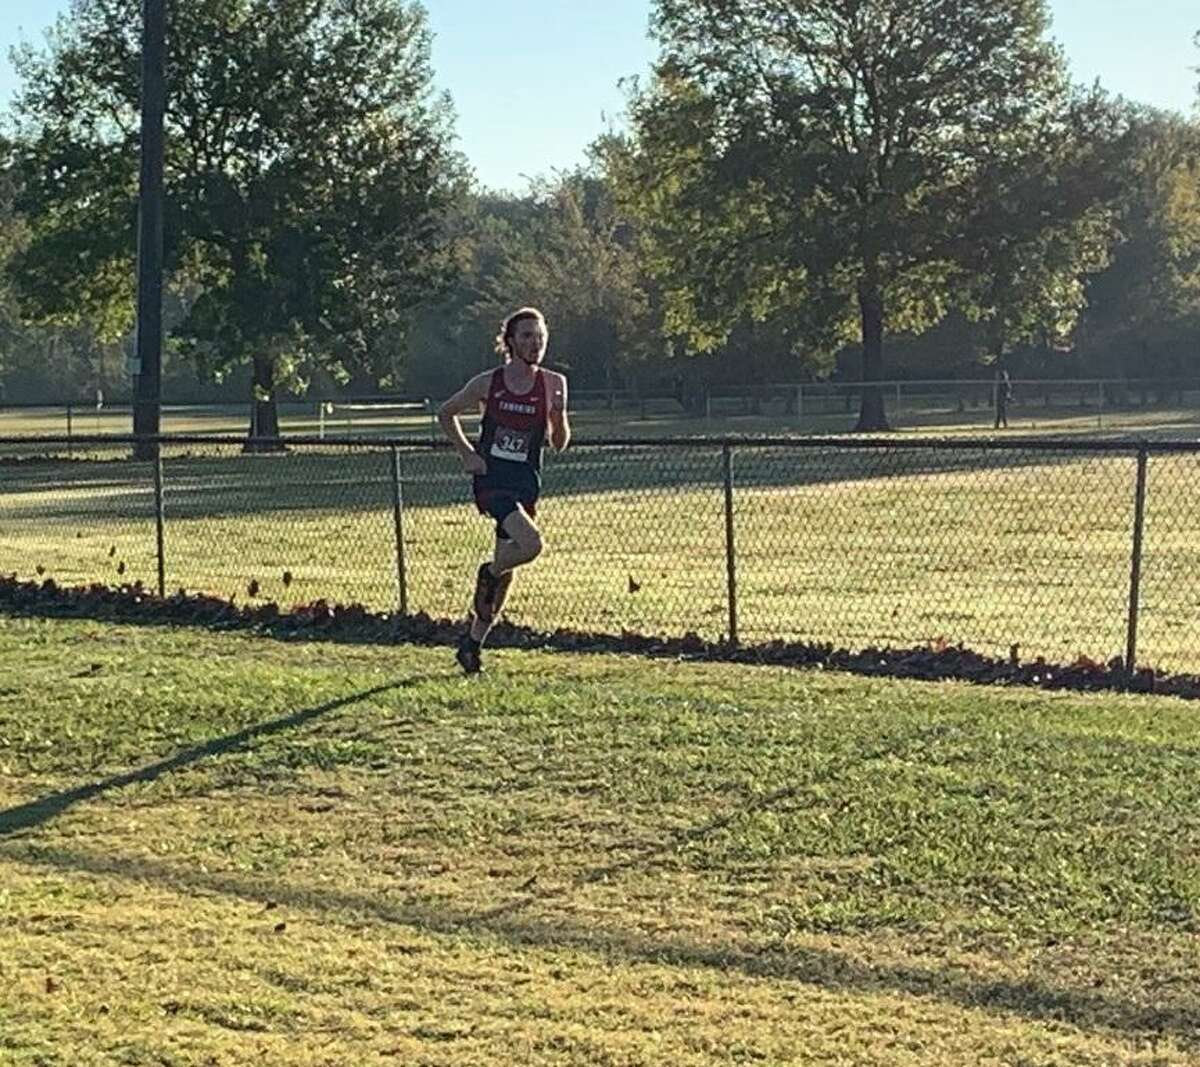 Tompkins' Ben Smith was the District 19-6A runner-up with a five-kilometer time of 15:38.0, Oct. 30 at Bear Creek Park.